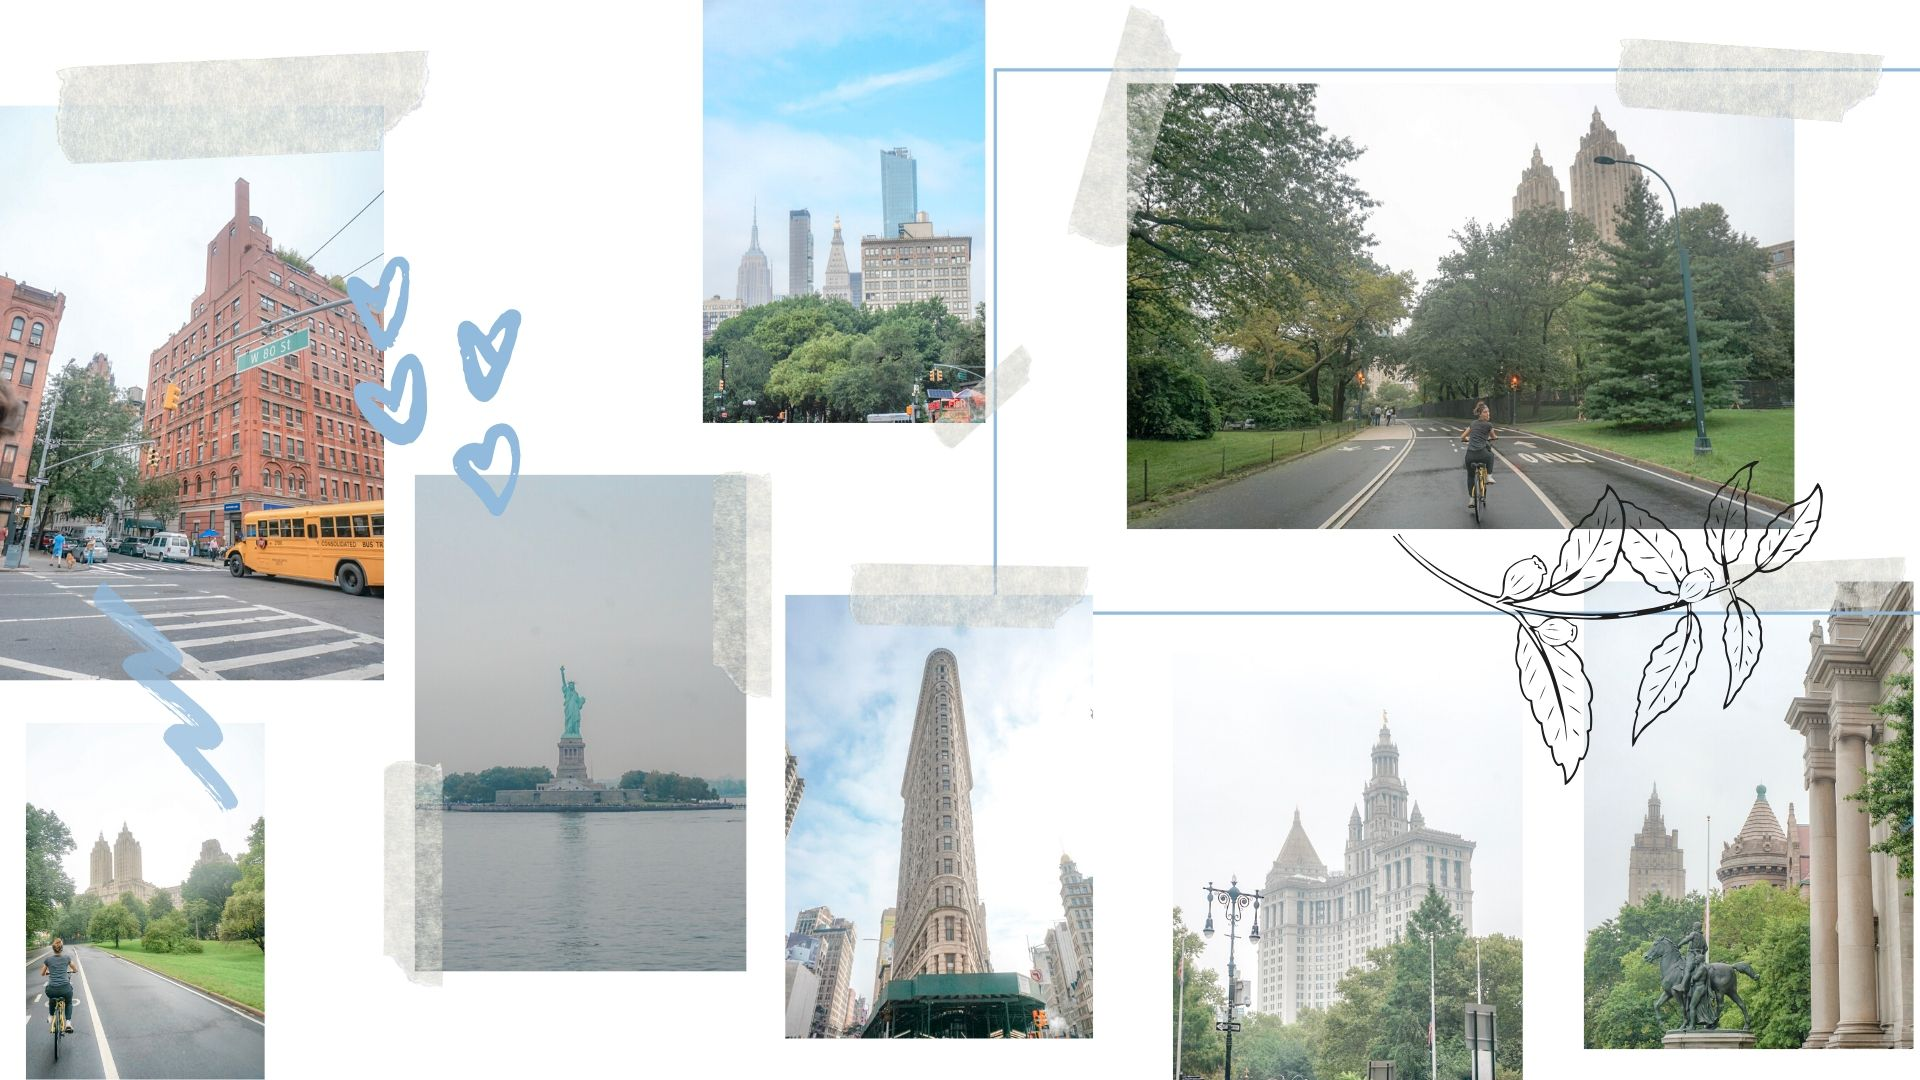 Visiter New York guide pratique